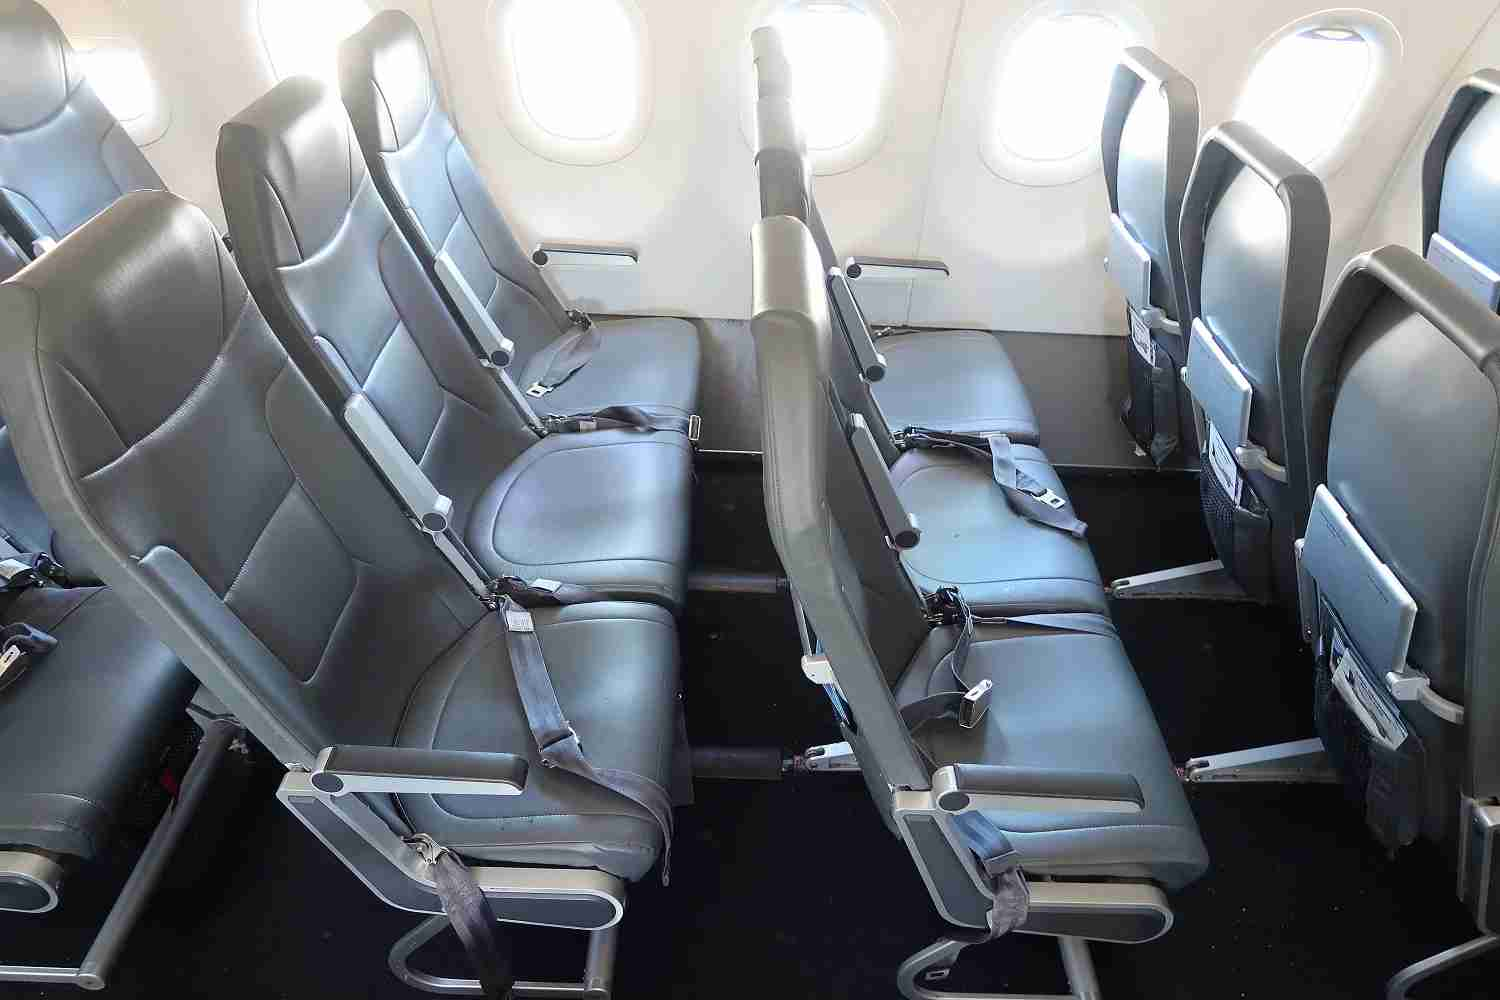 If you fly Frontier as a family, you will likely spend money on ancillary fees (JT Genter / The Points Guy)